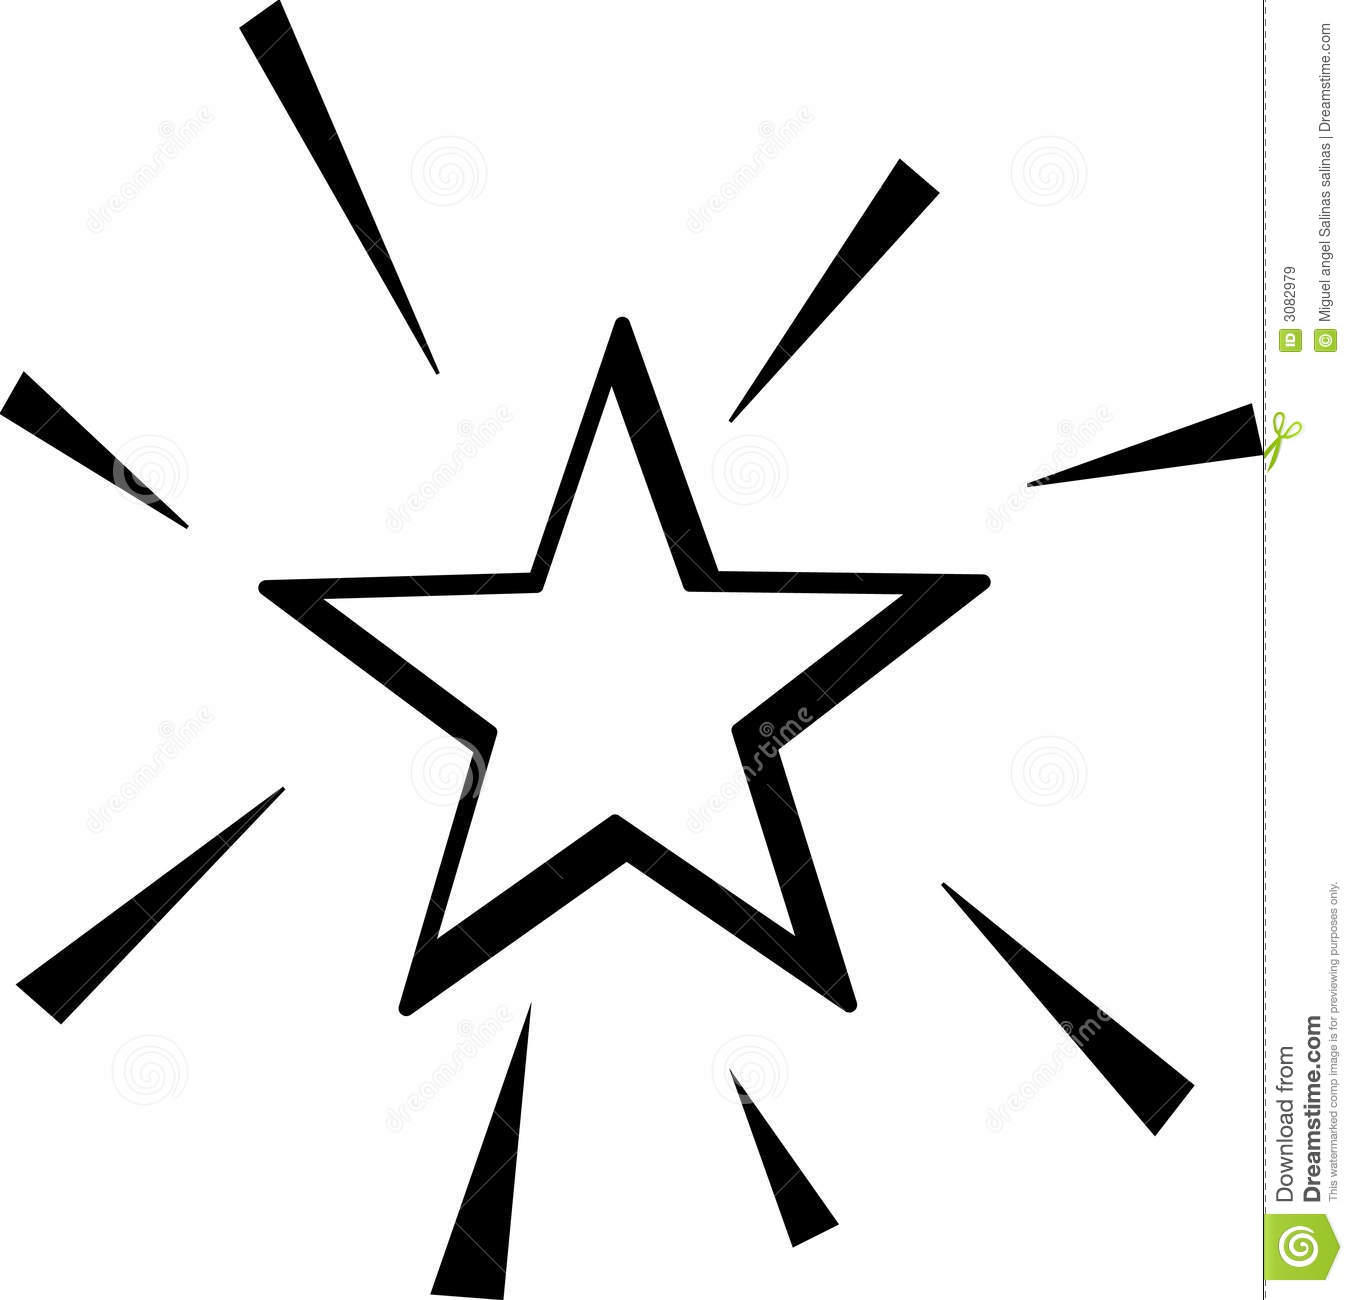 Shiny Star Vector Illustration Royalty Free Stock Images